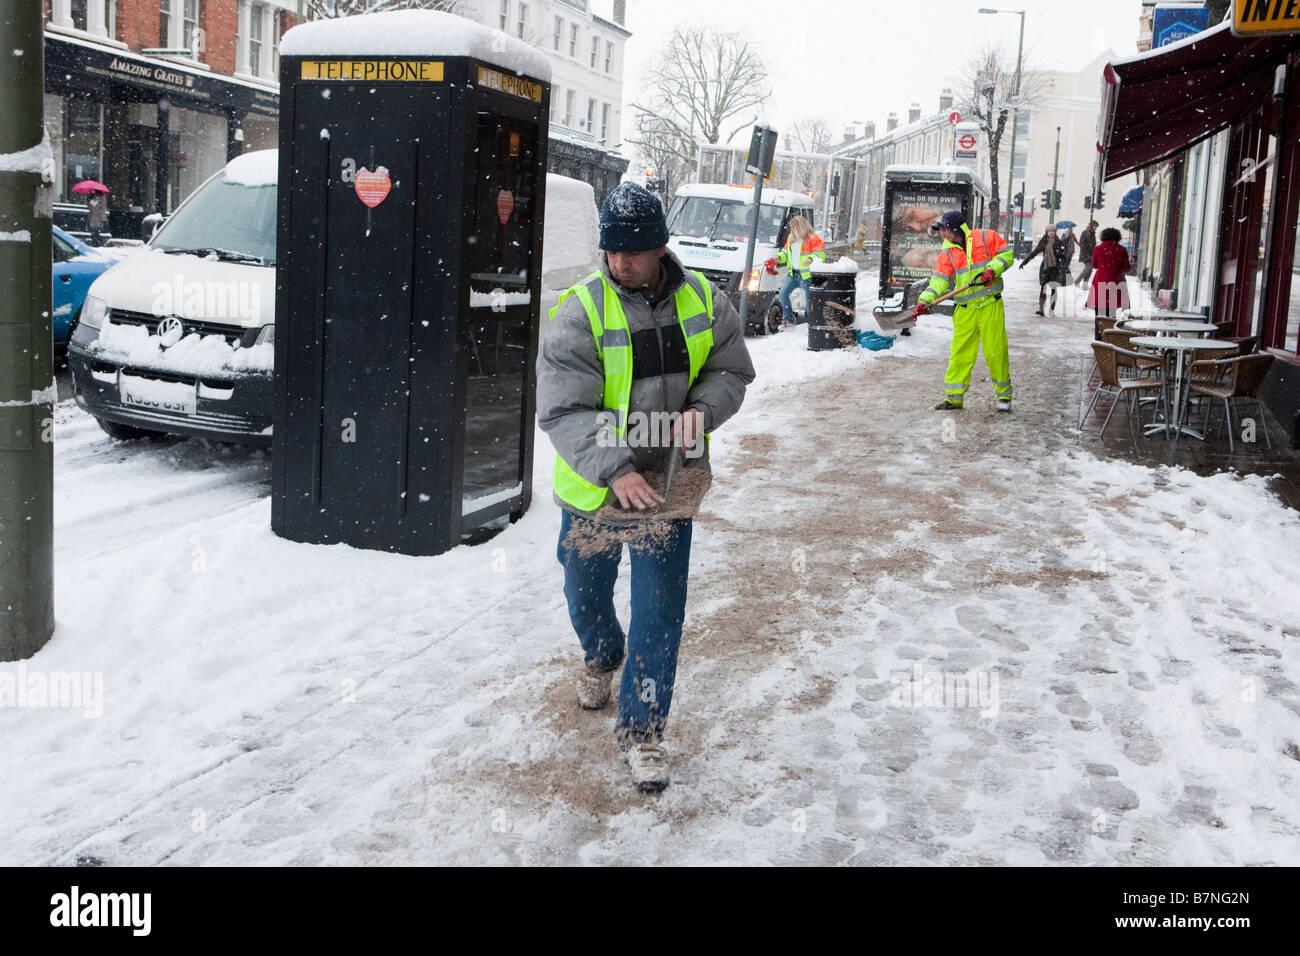 Barnet Borough Council workers spread grit and salt on the pavement near East Finchley Underground Station - Stock Image